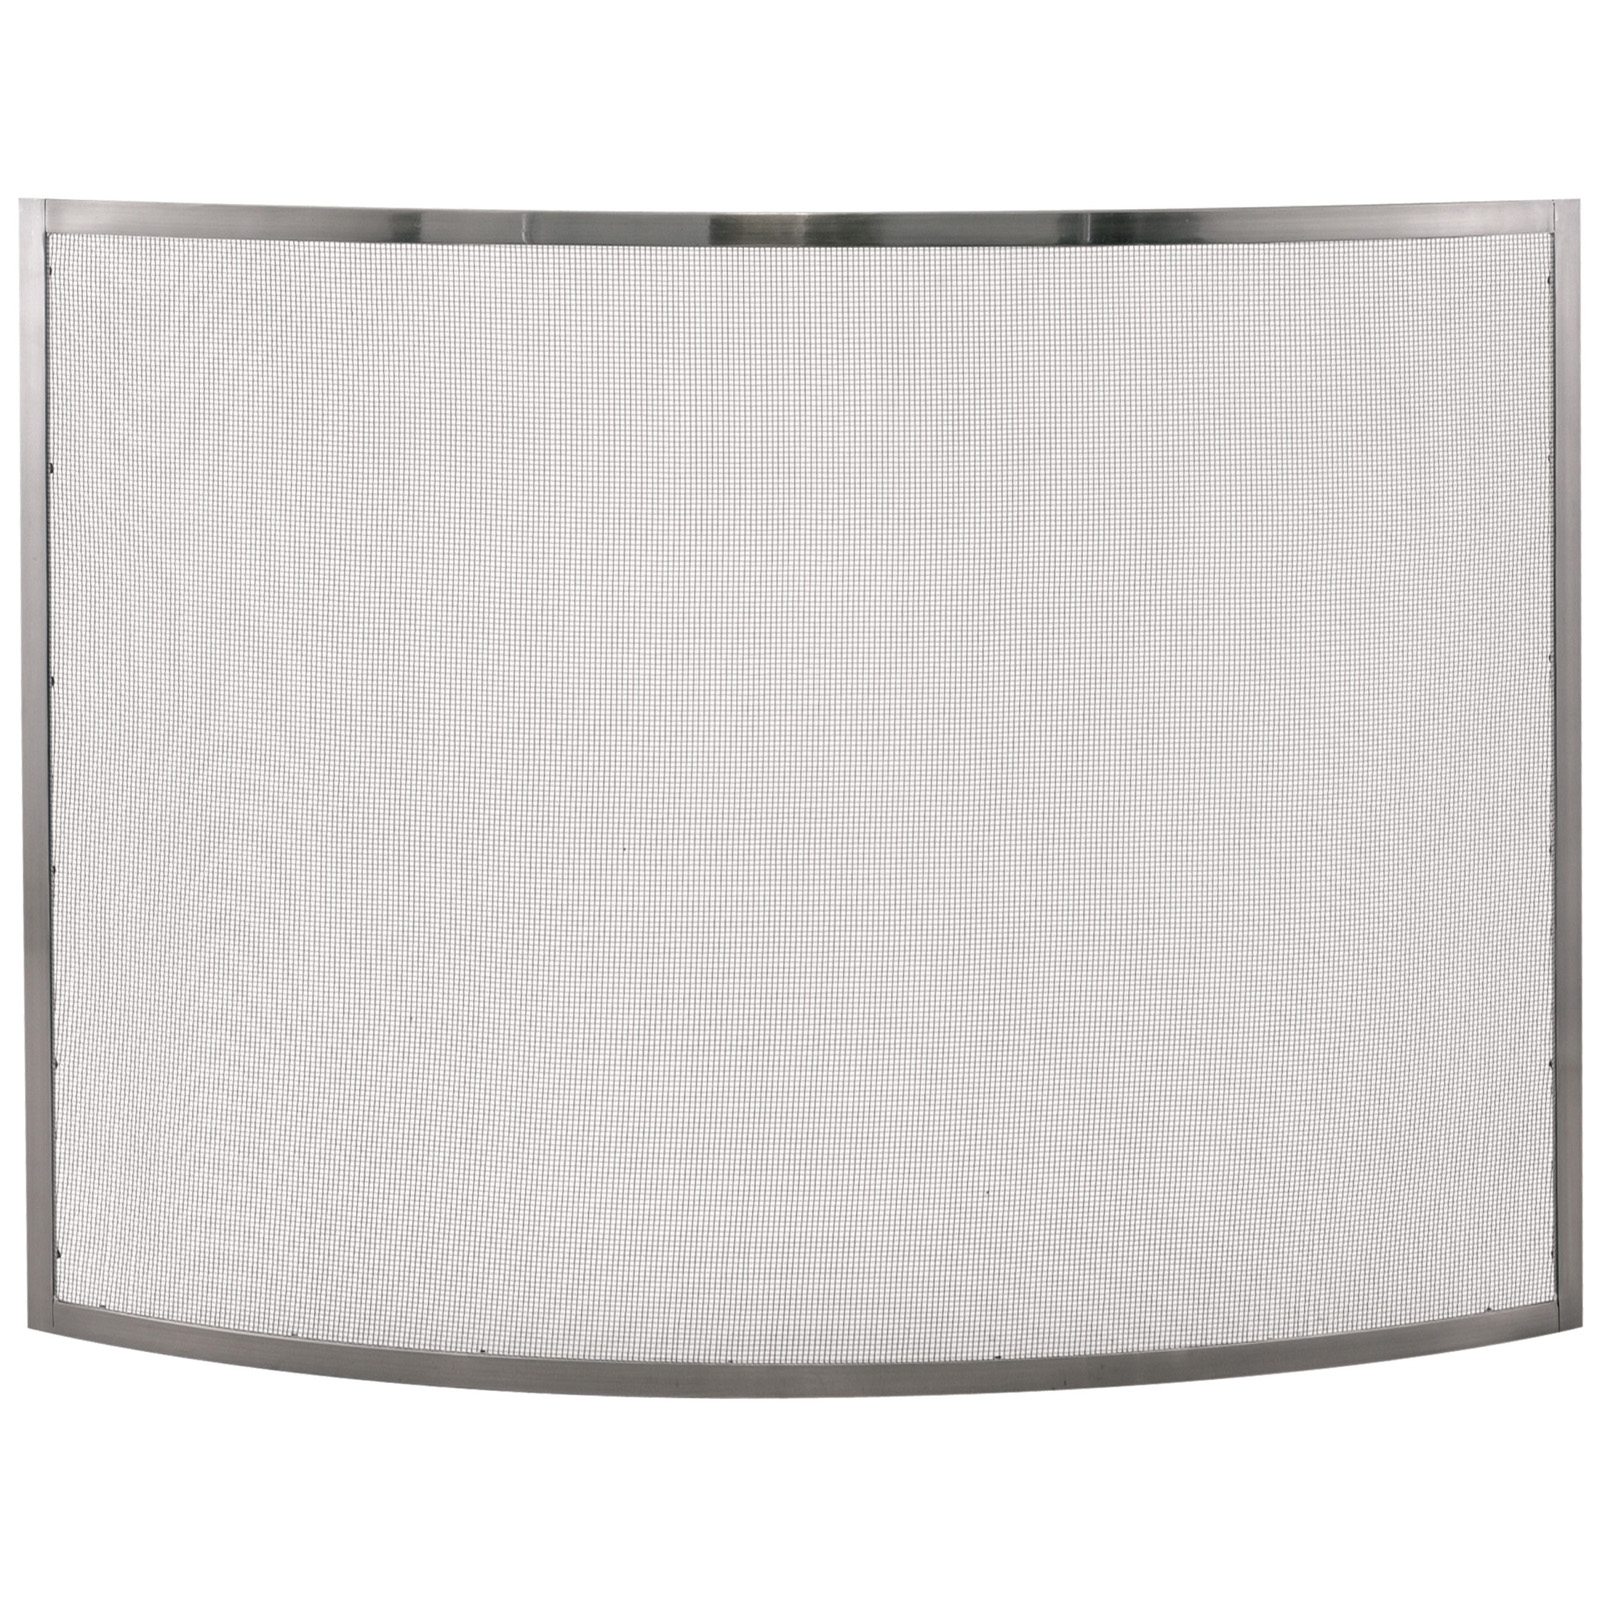 uniflame fireplace.  UniFlame Single Panel Curved Pewter Fireplace Screen Hayneedle